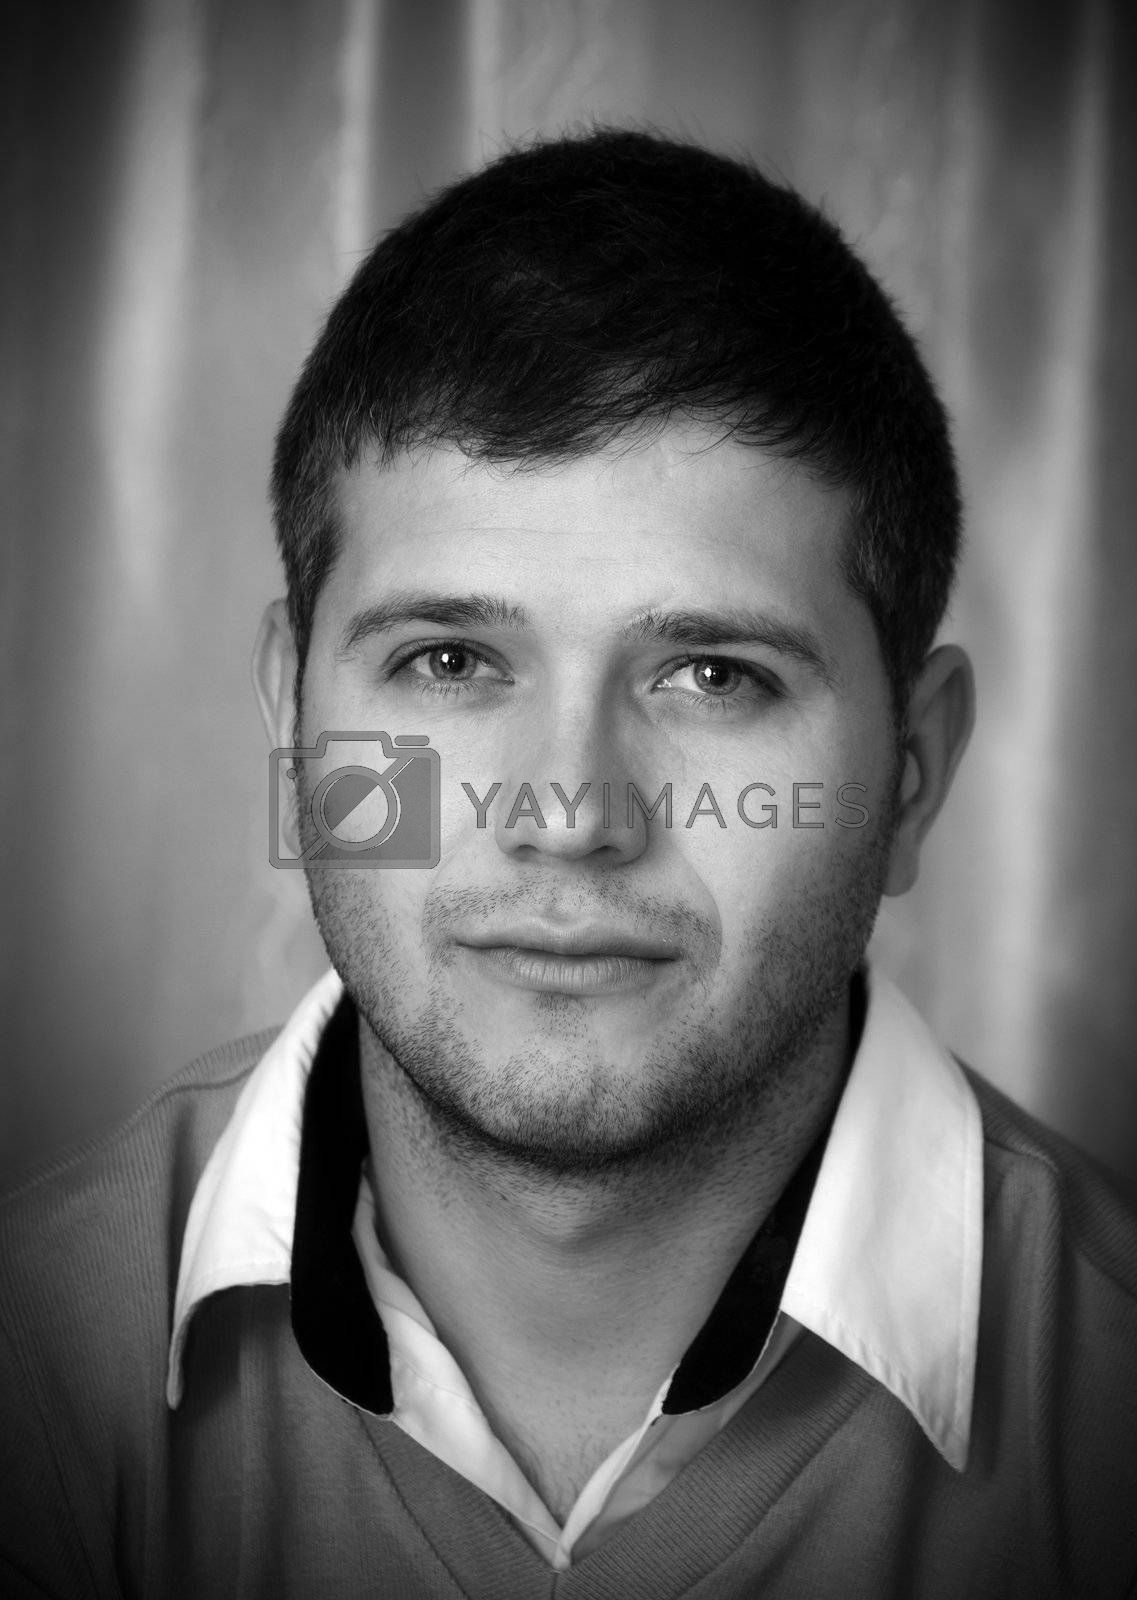 Black and white portrait of young man looking at camera